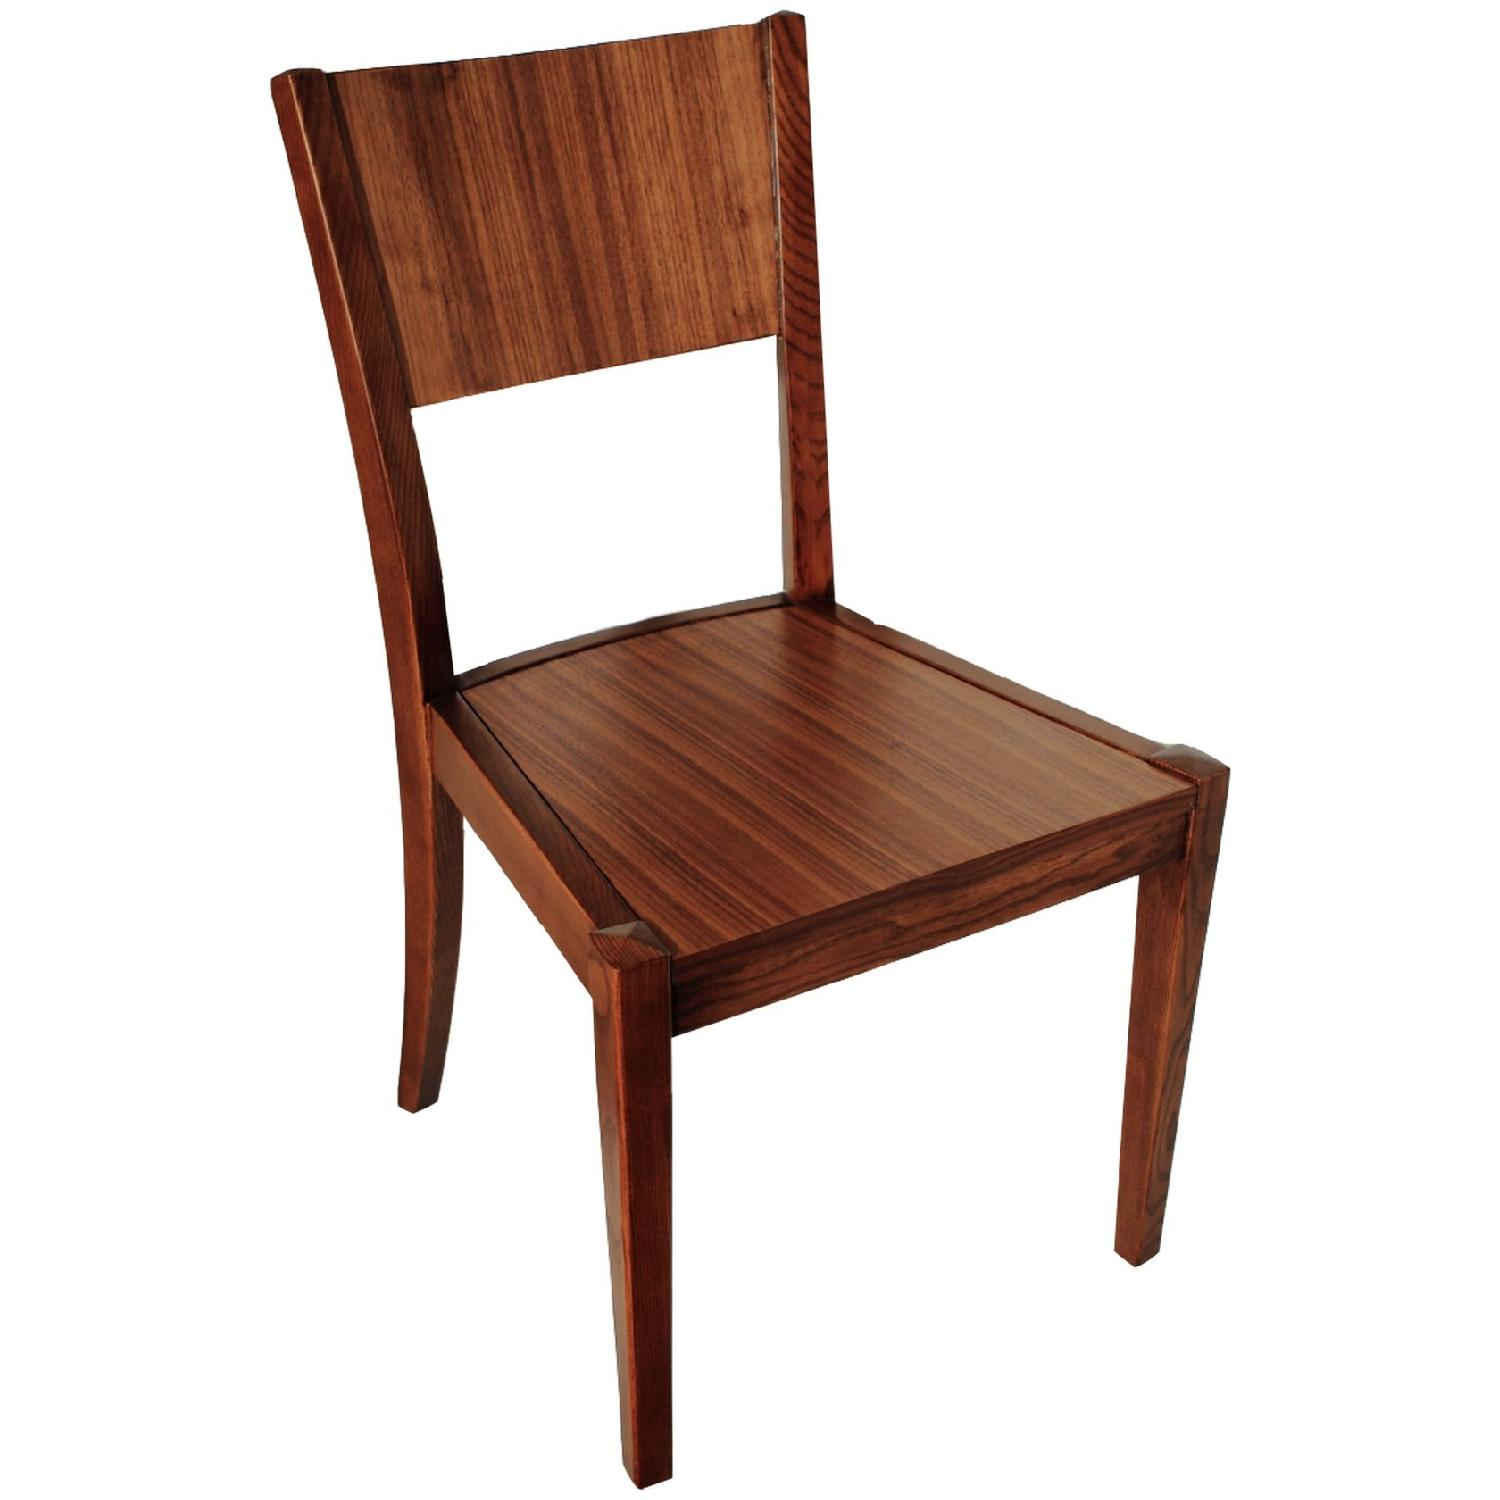 Modern Style Wood Dining Chair in Walnut Finish